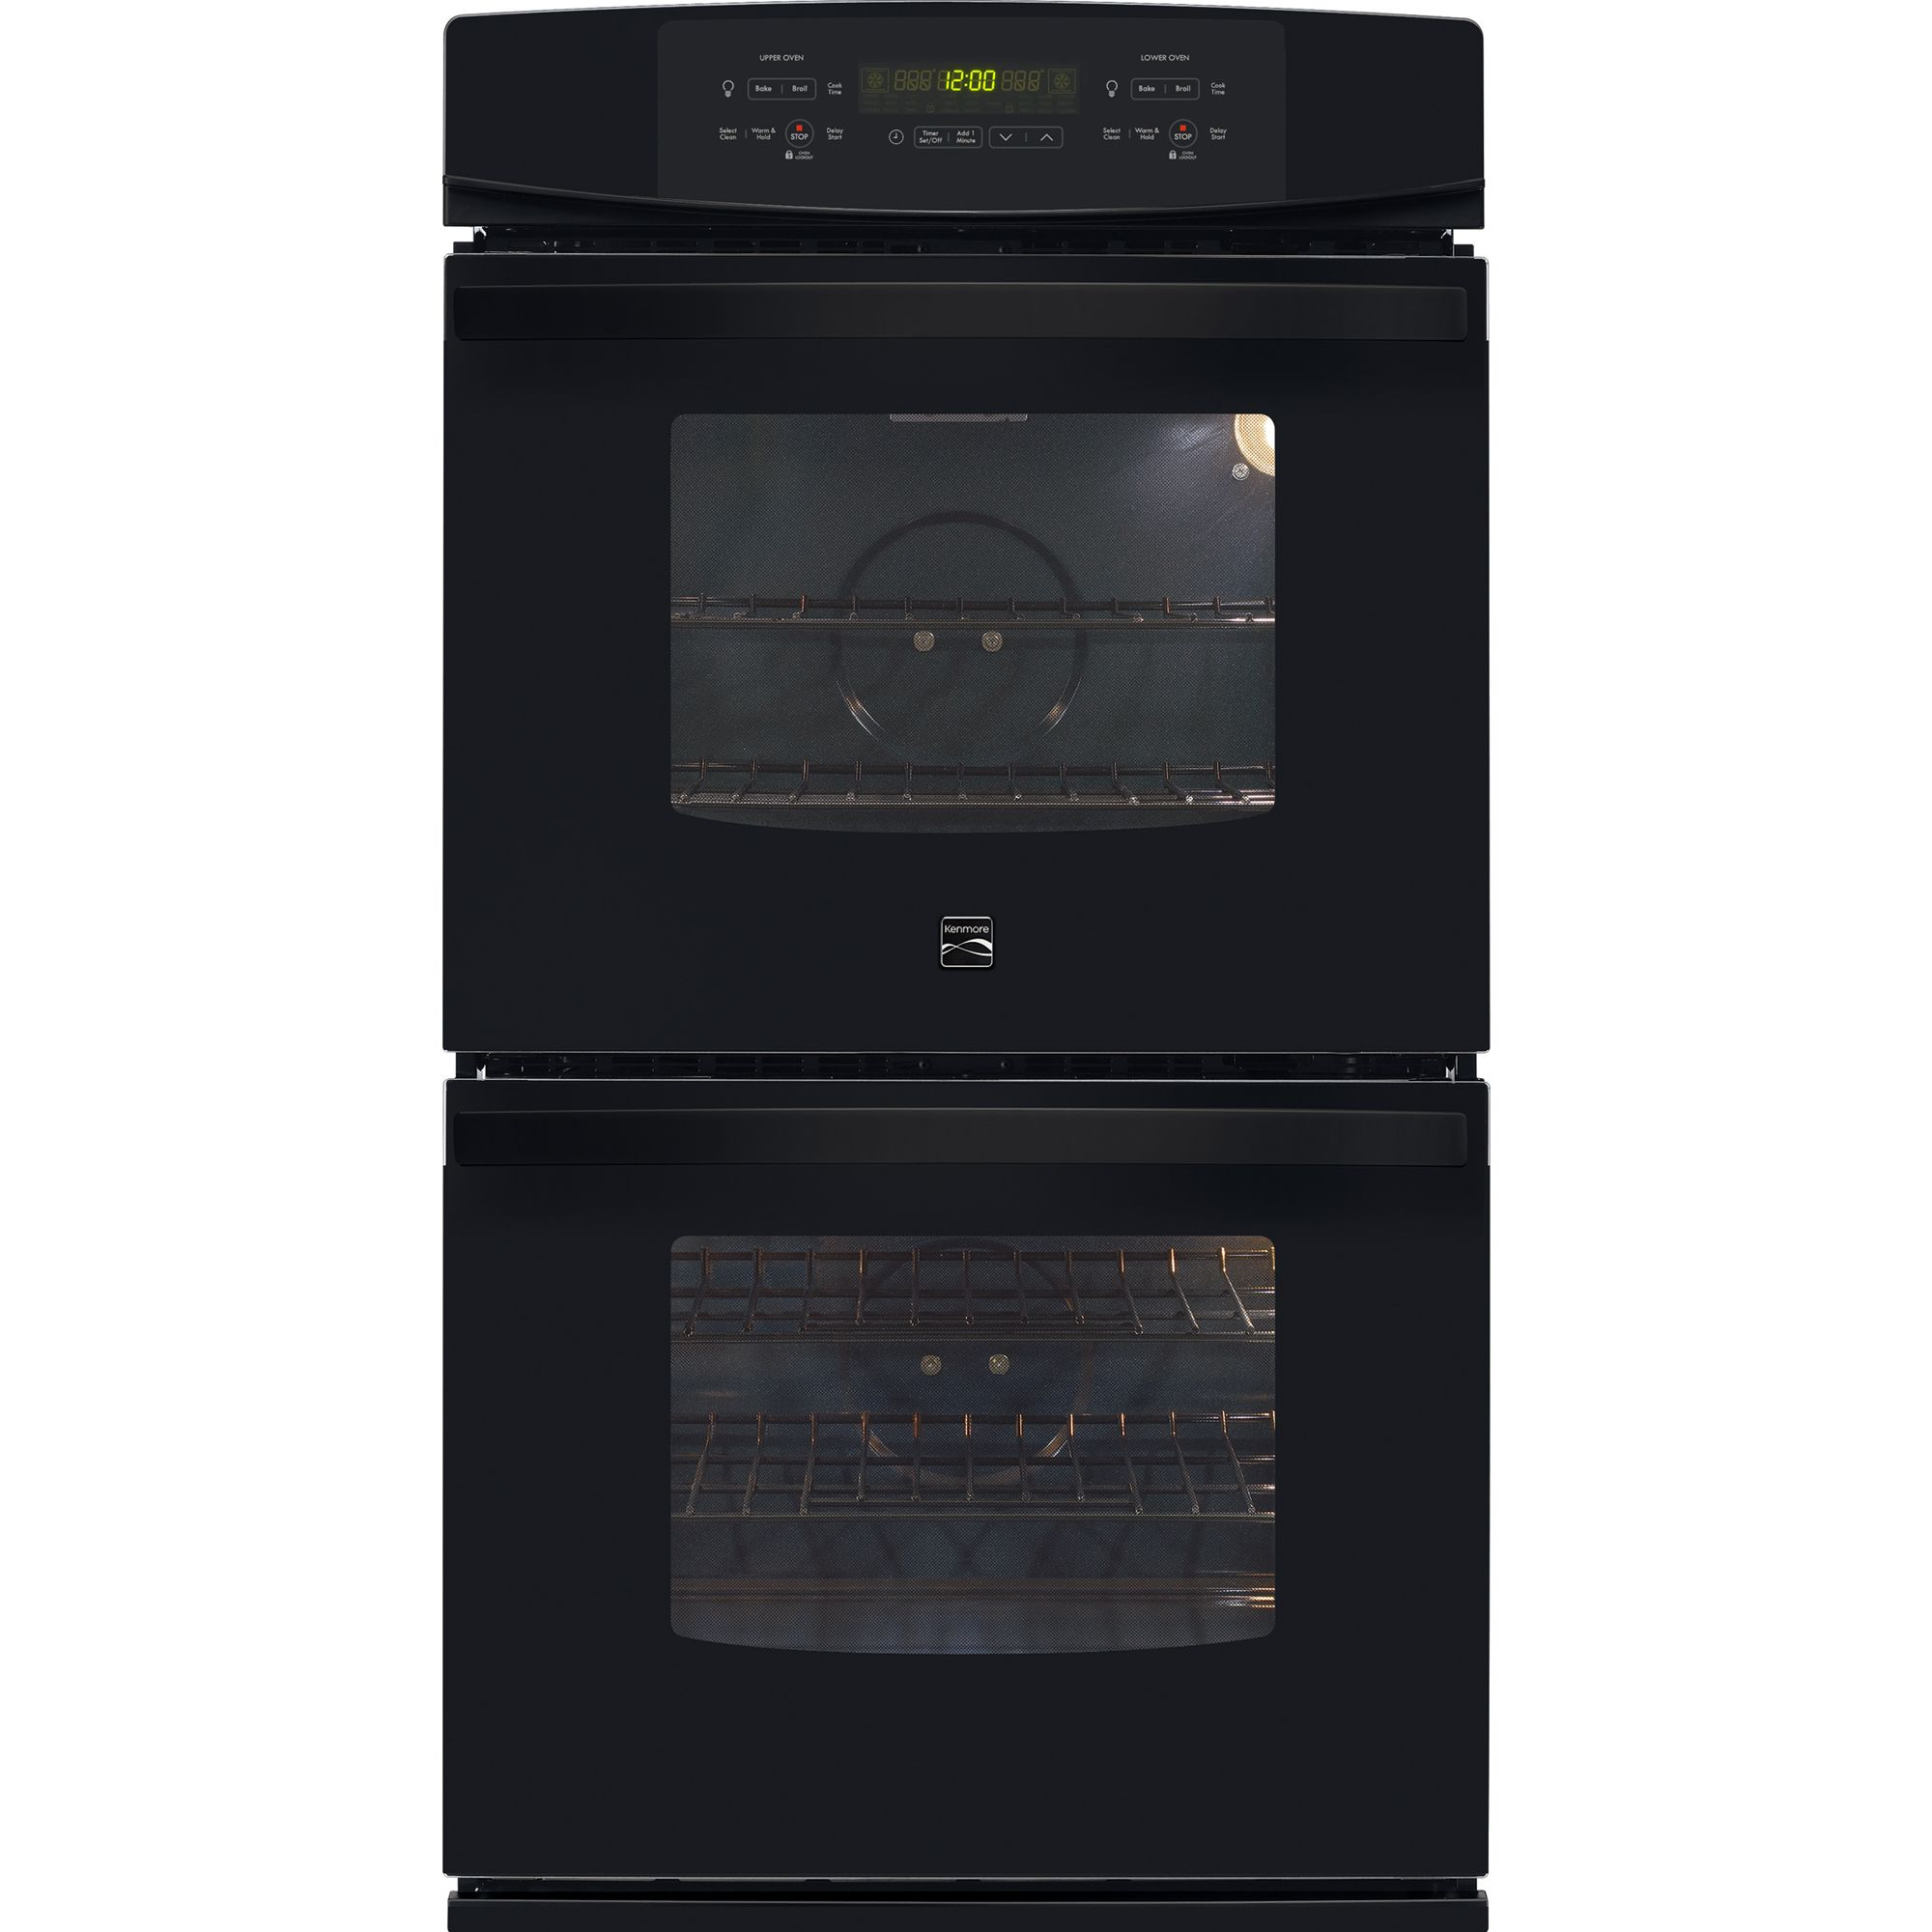 Kenmore 48779 30 Self Clean Double Electric Wall Oven